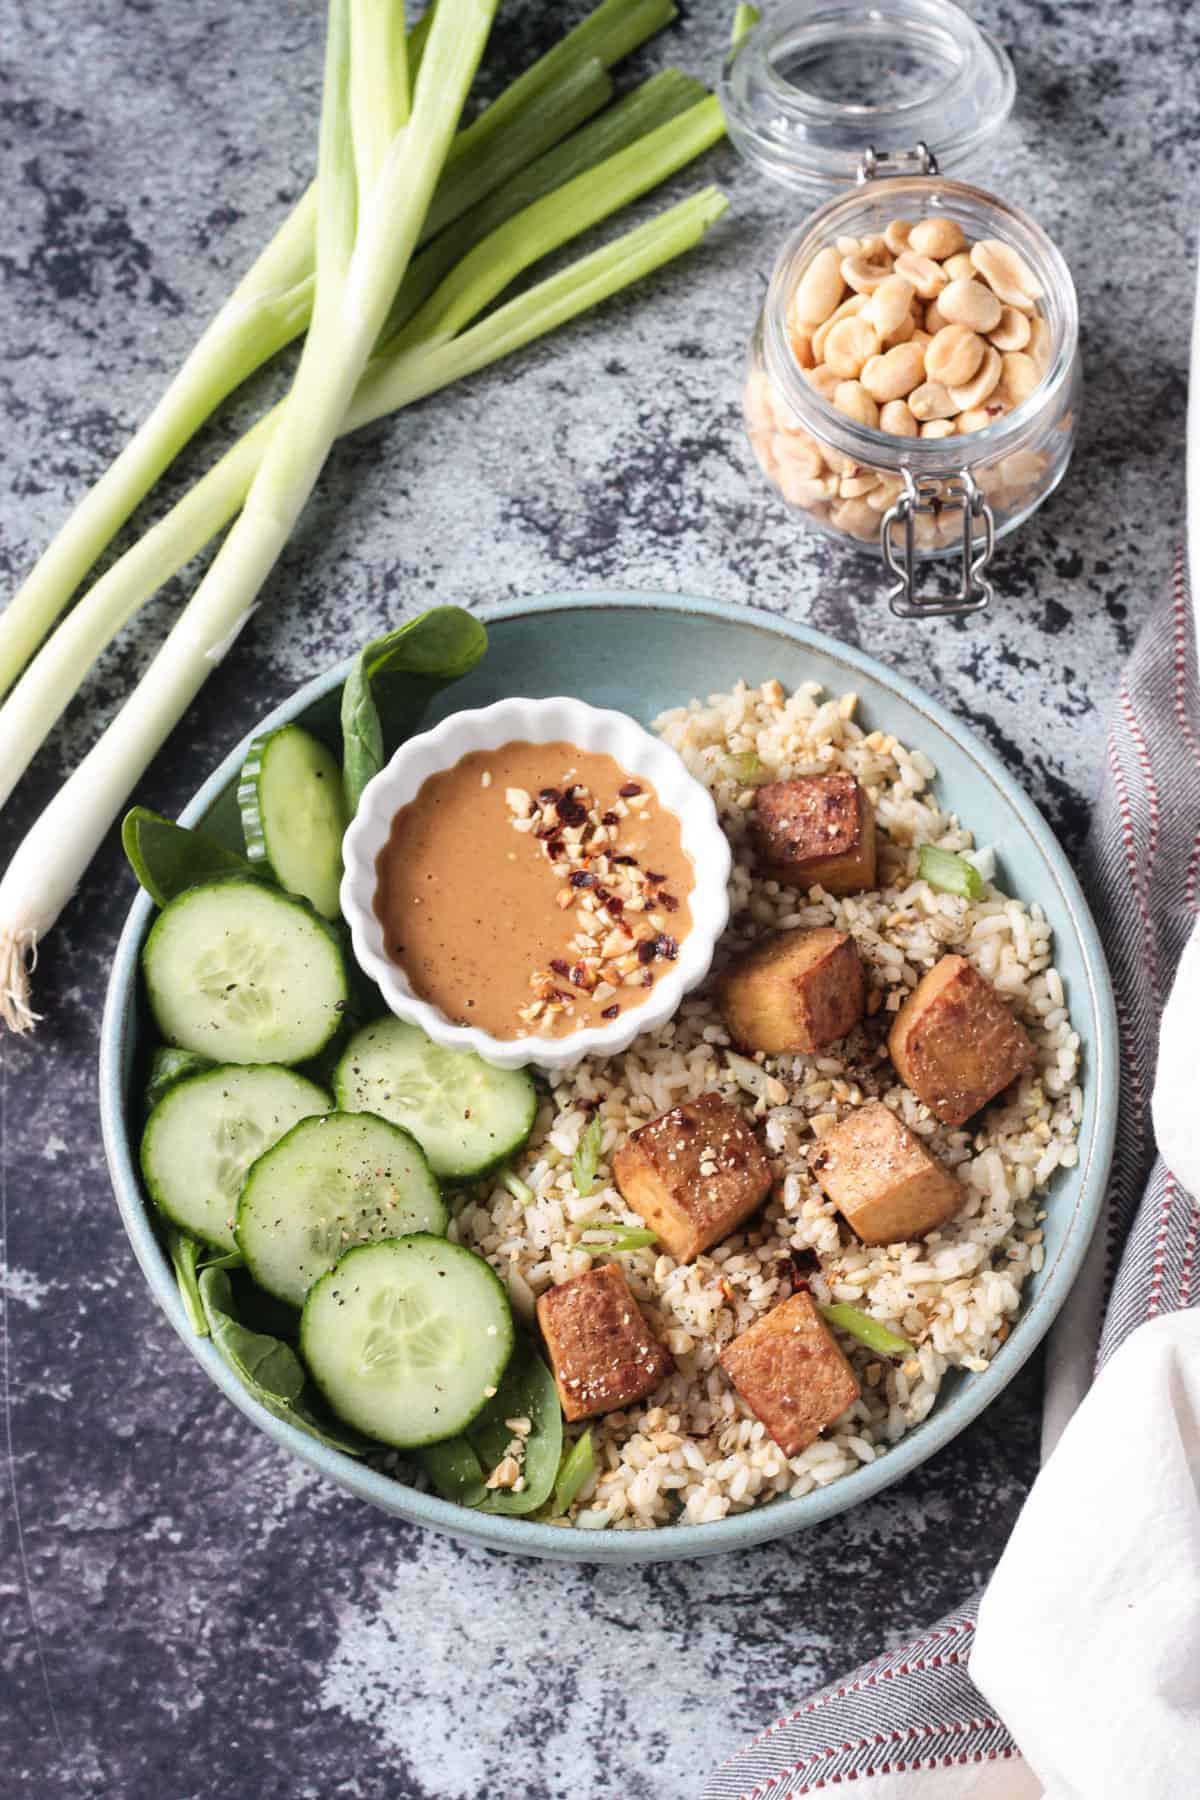 Baked tofu over rice with a side of cucumbers and peanut sauce.